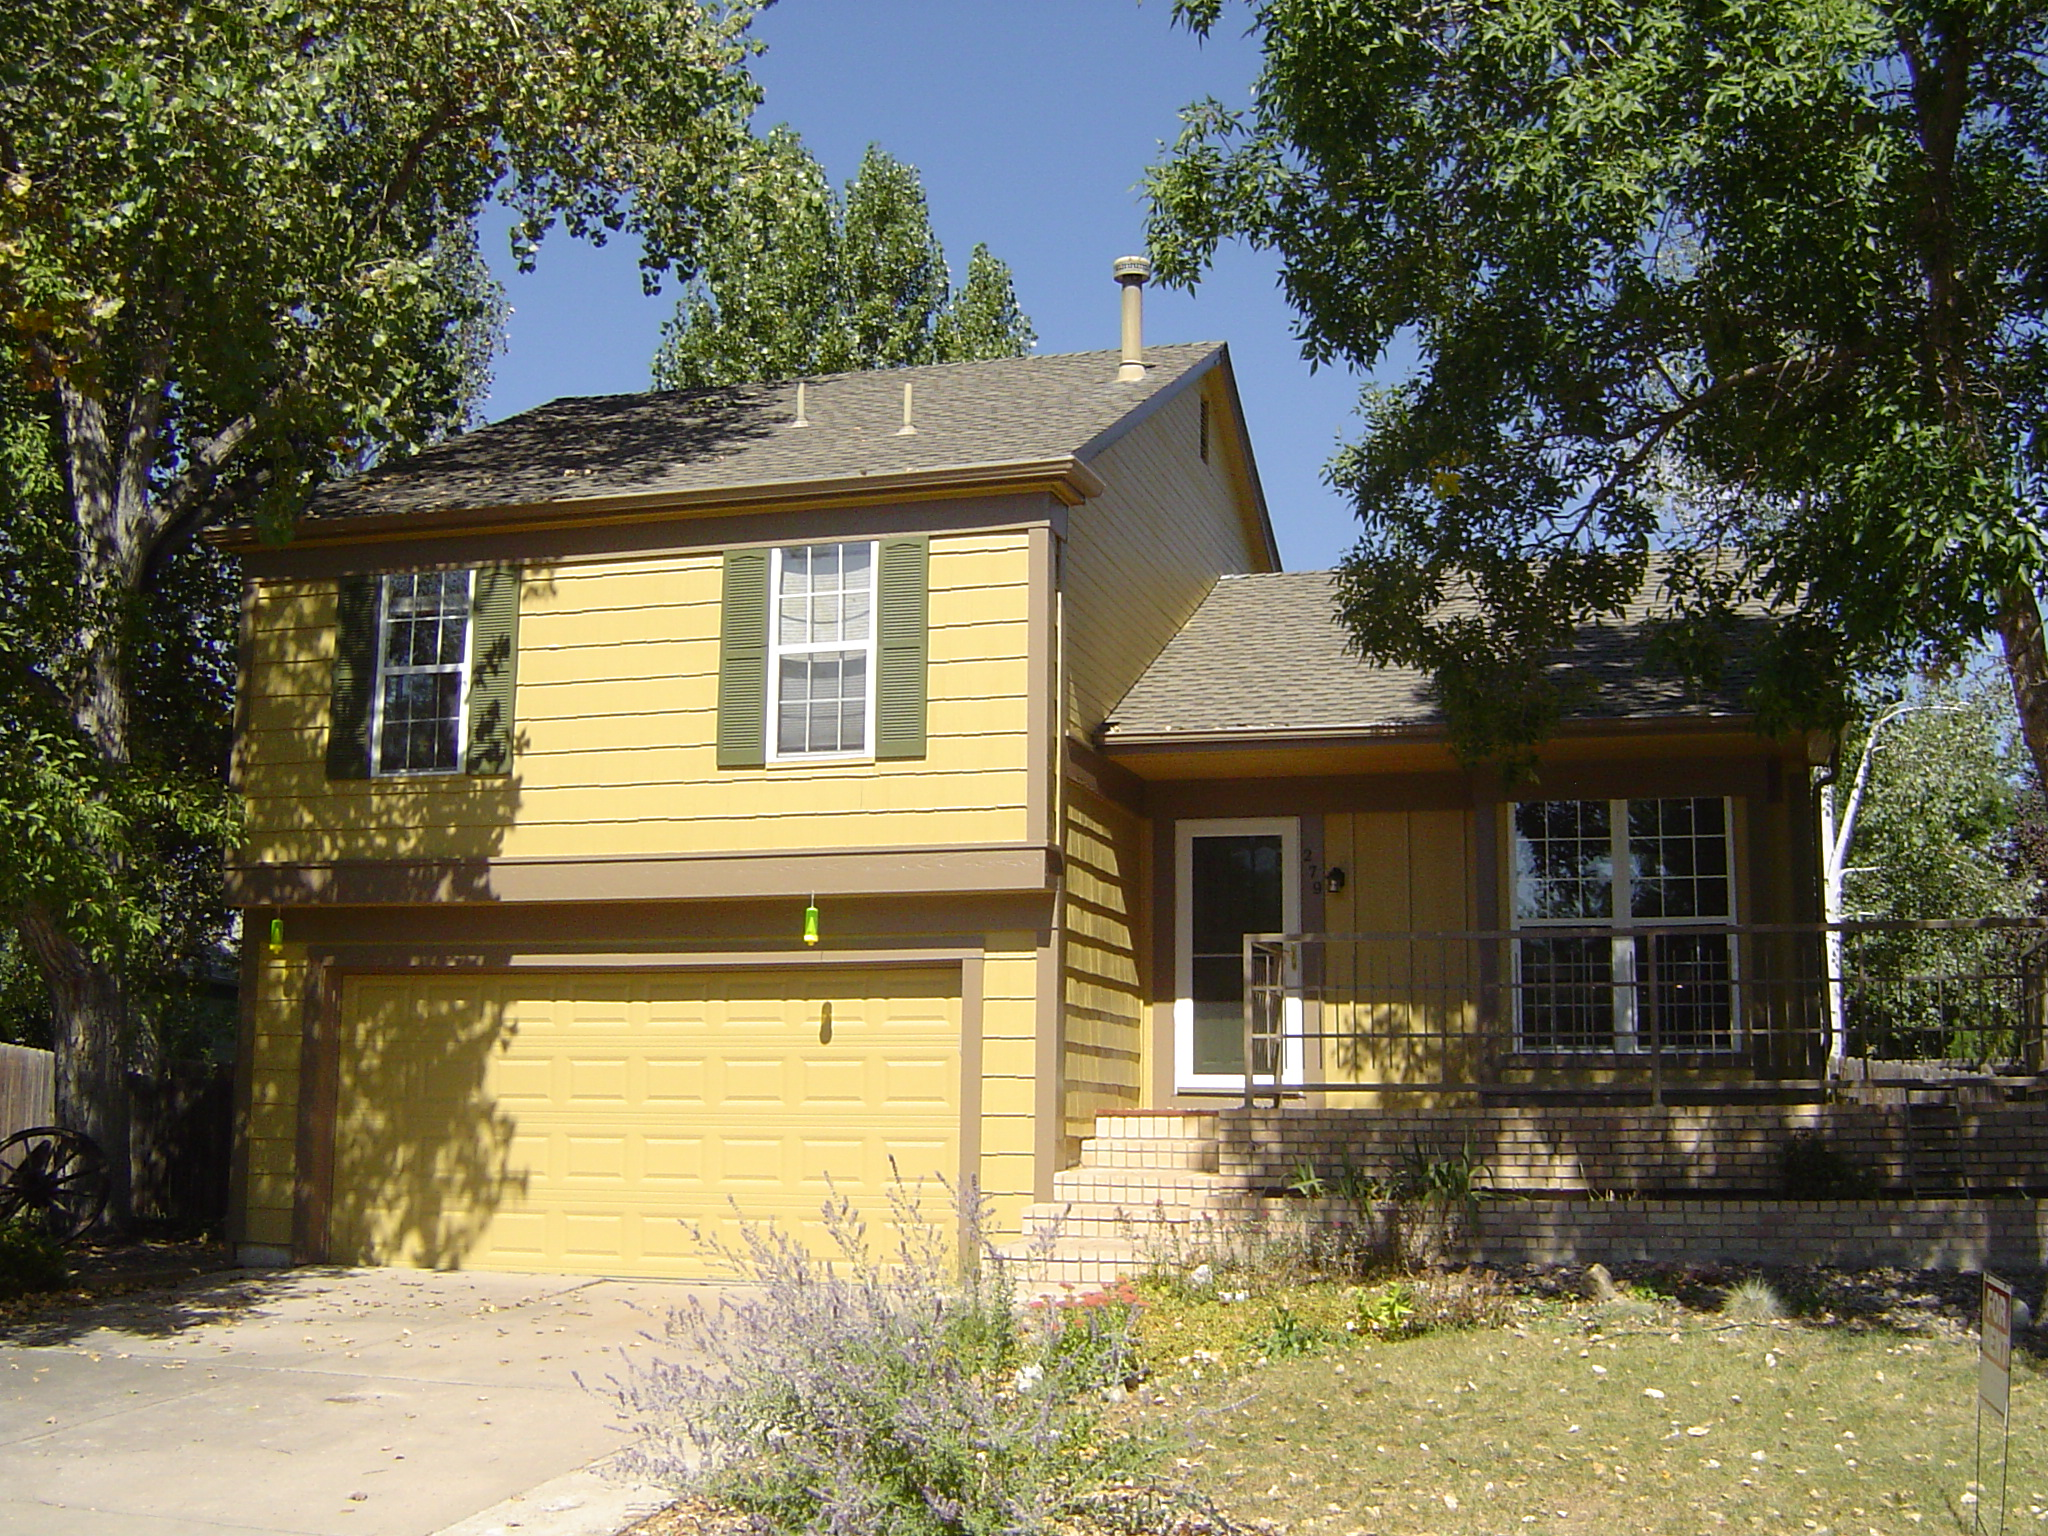 Great exterior painting project of this prep for sale home - Prep exterior walls for painting ...